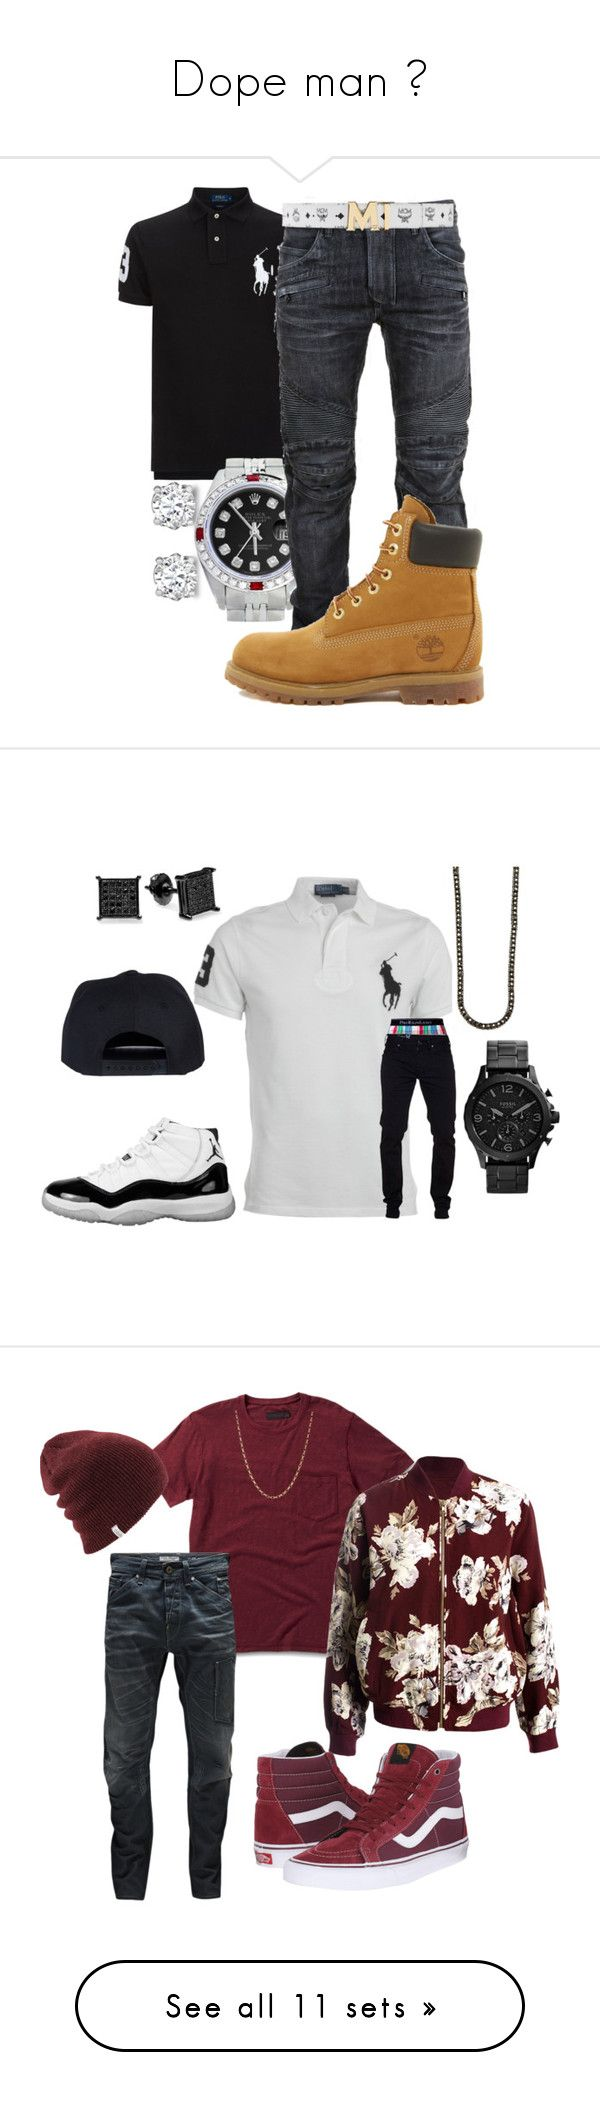 """""""Dope man """" by jdzzee ❤ liked on Polyvore featuring Asprey, Polo Ralph Lauren, Rolex, Balmain, Timberland, MCM, men's fashion, menswear, Ralph Lauren and FOSSIL"""